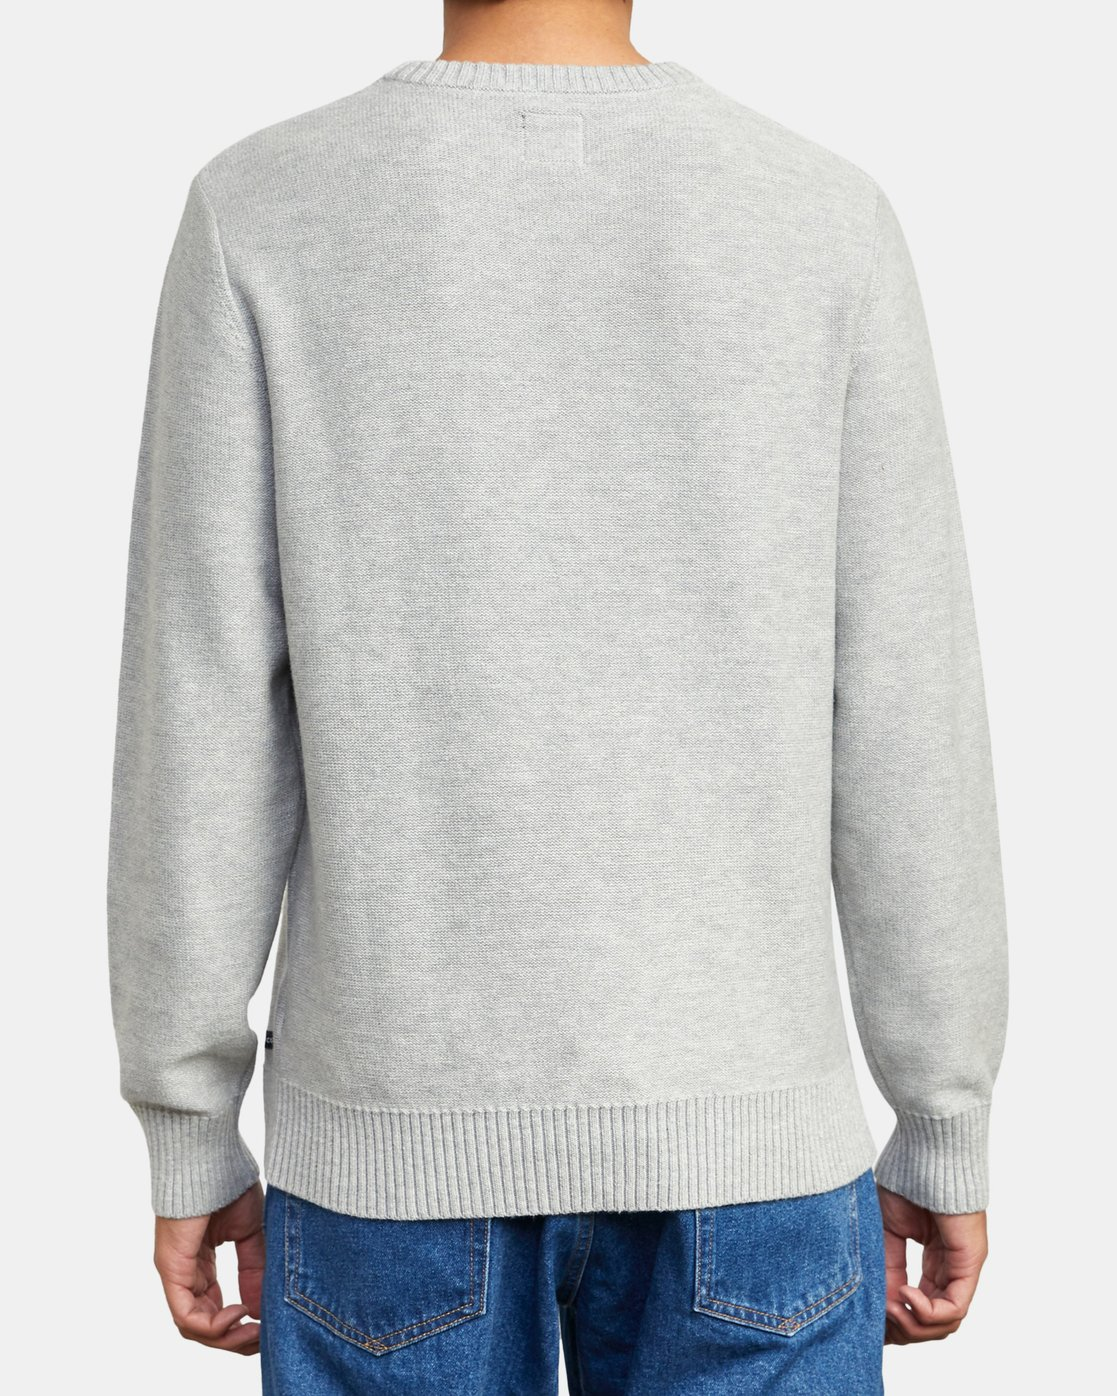 5 Witz Marl - Jumper for Men White U1JPRBRVF0 RVCA